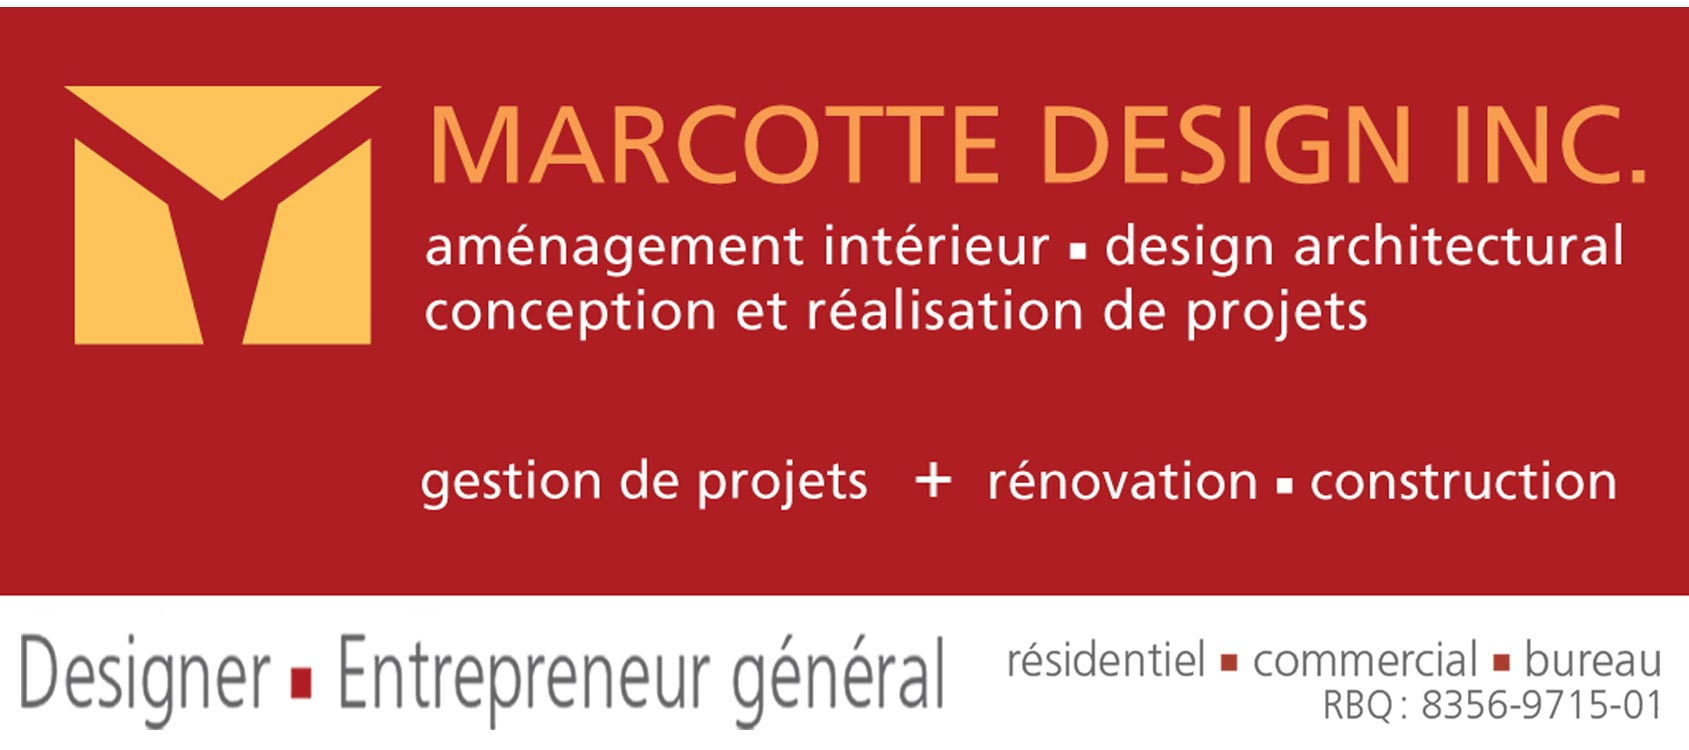 Construction et rénovation Marcotte Design Inc